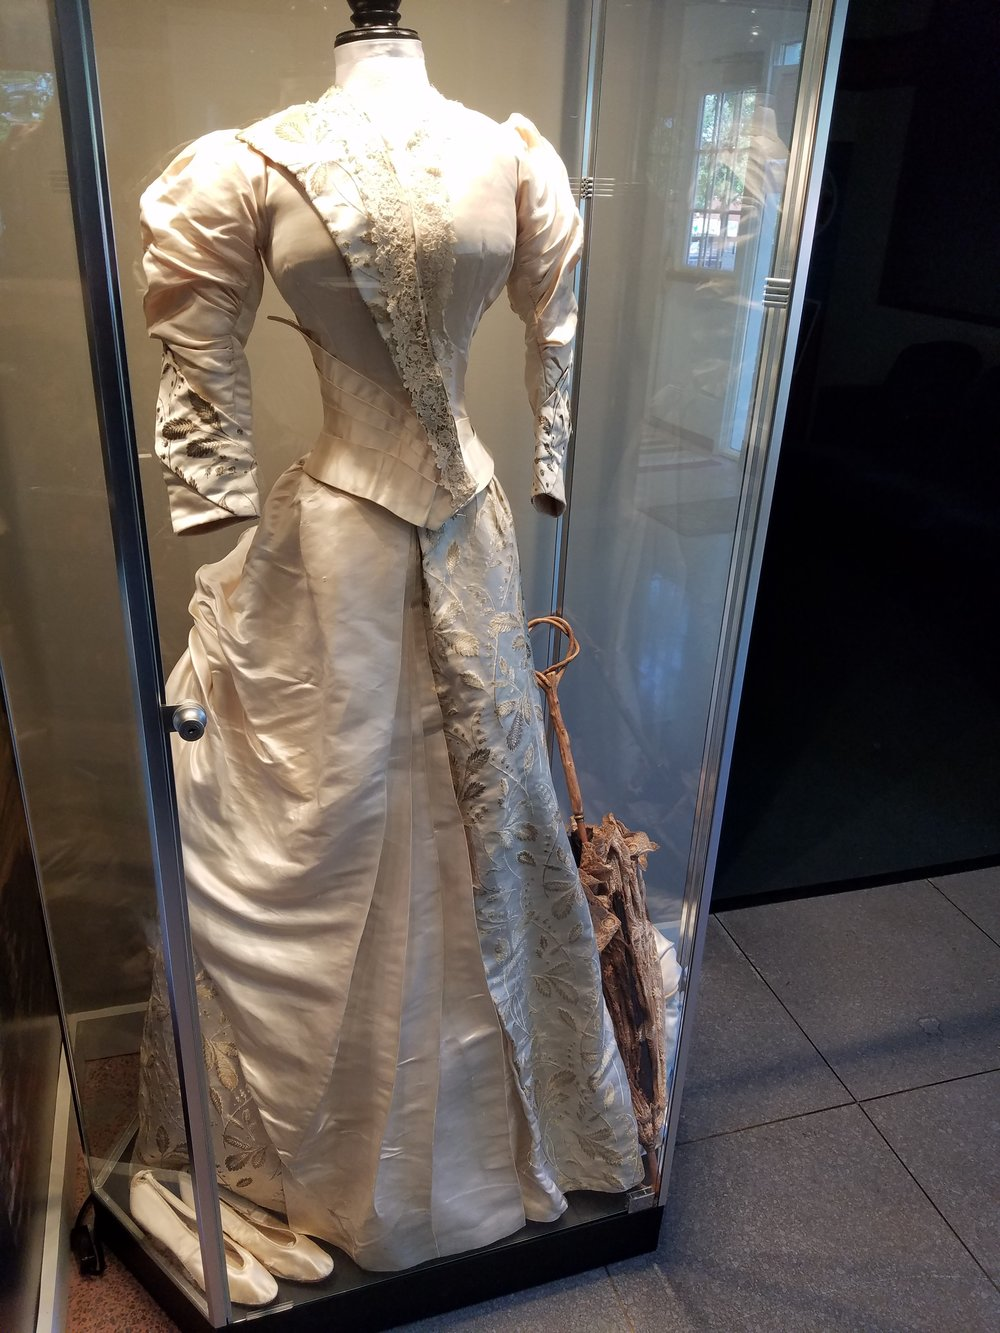 Maria Howard Ranson's wedding dress and her trousseau are a featured exhibit in the Howard display in the museum. A description of the wedding dress on a hand note written by May Howard, wife of William B. Howard's grandson, describes the dress and the wedding.